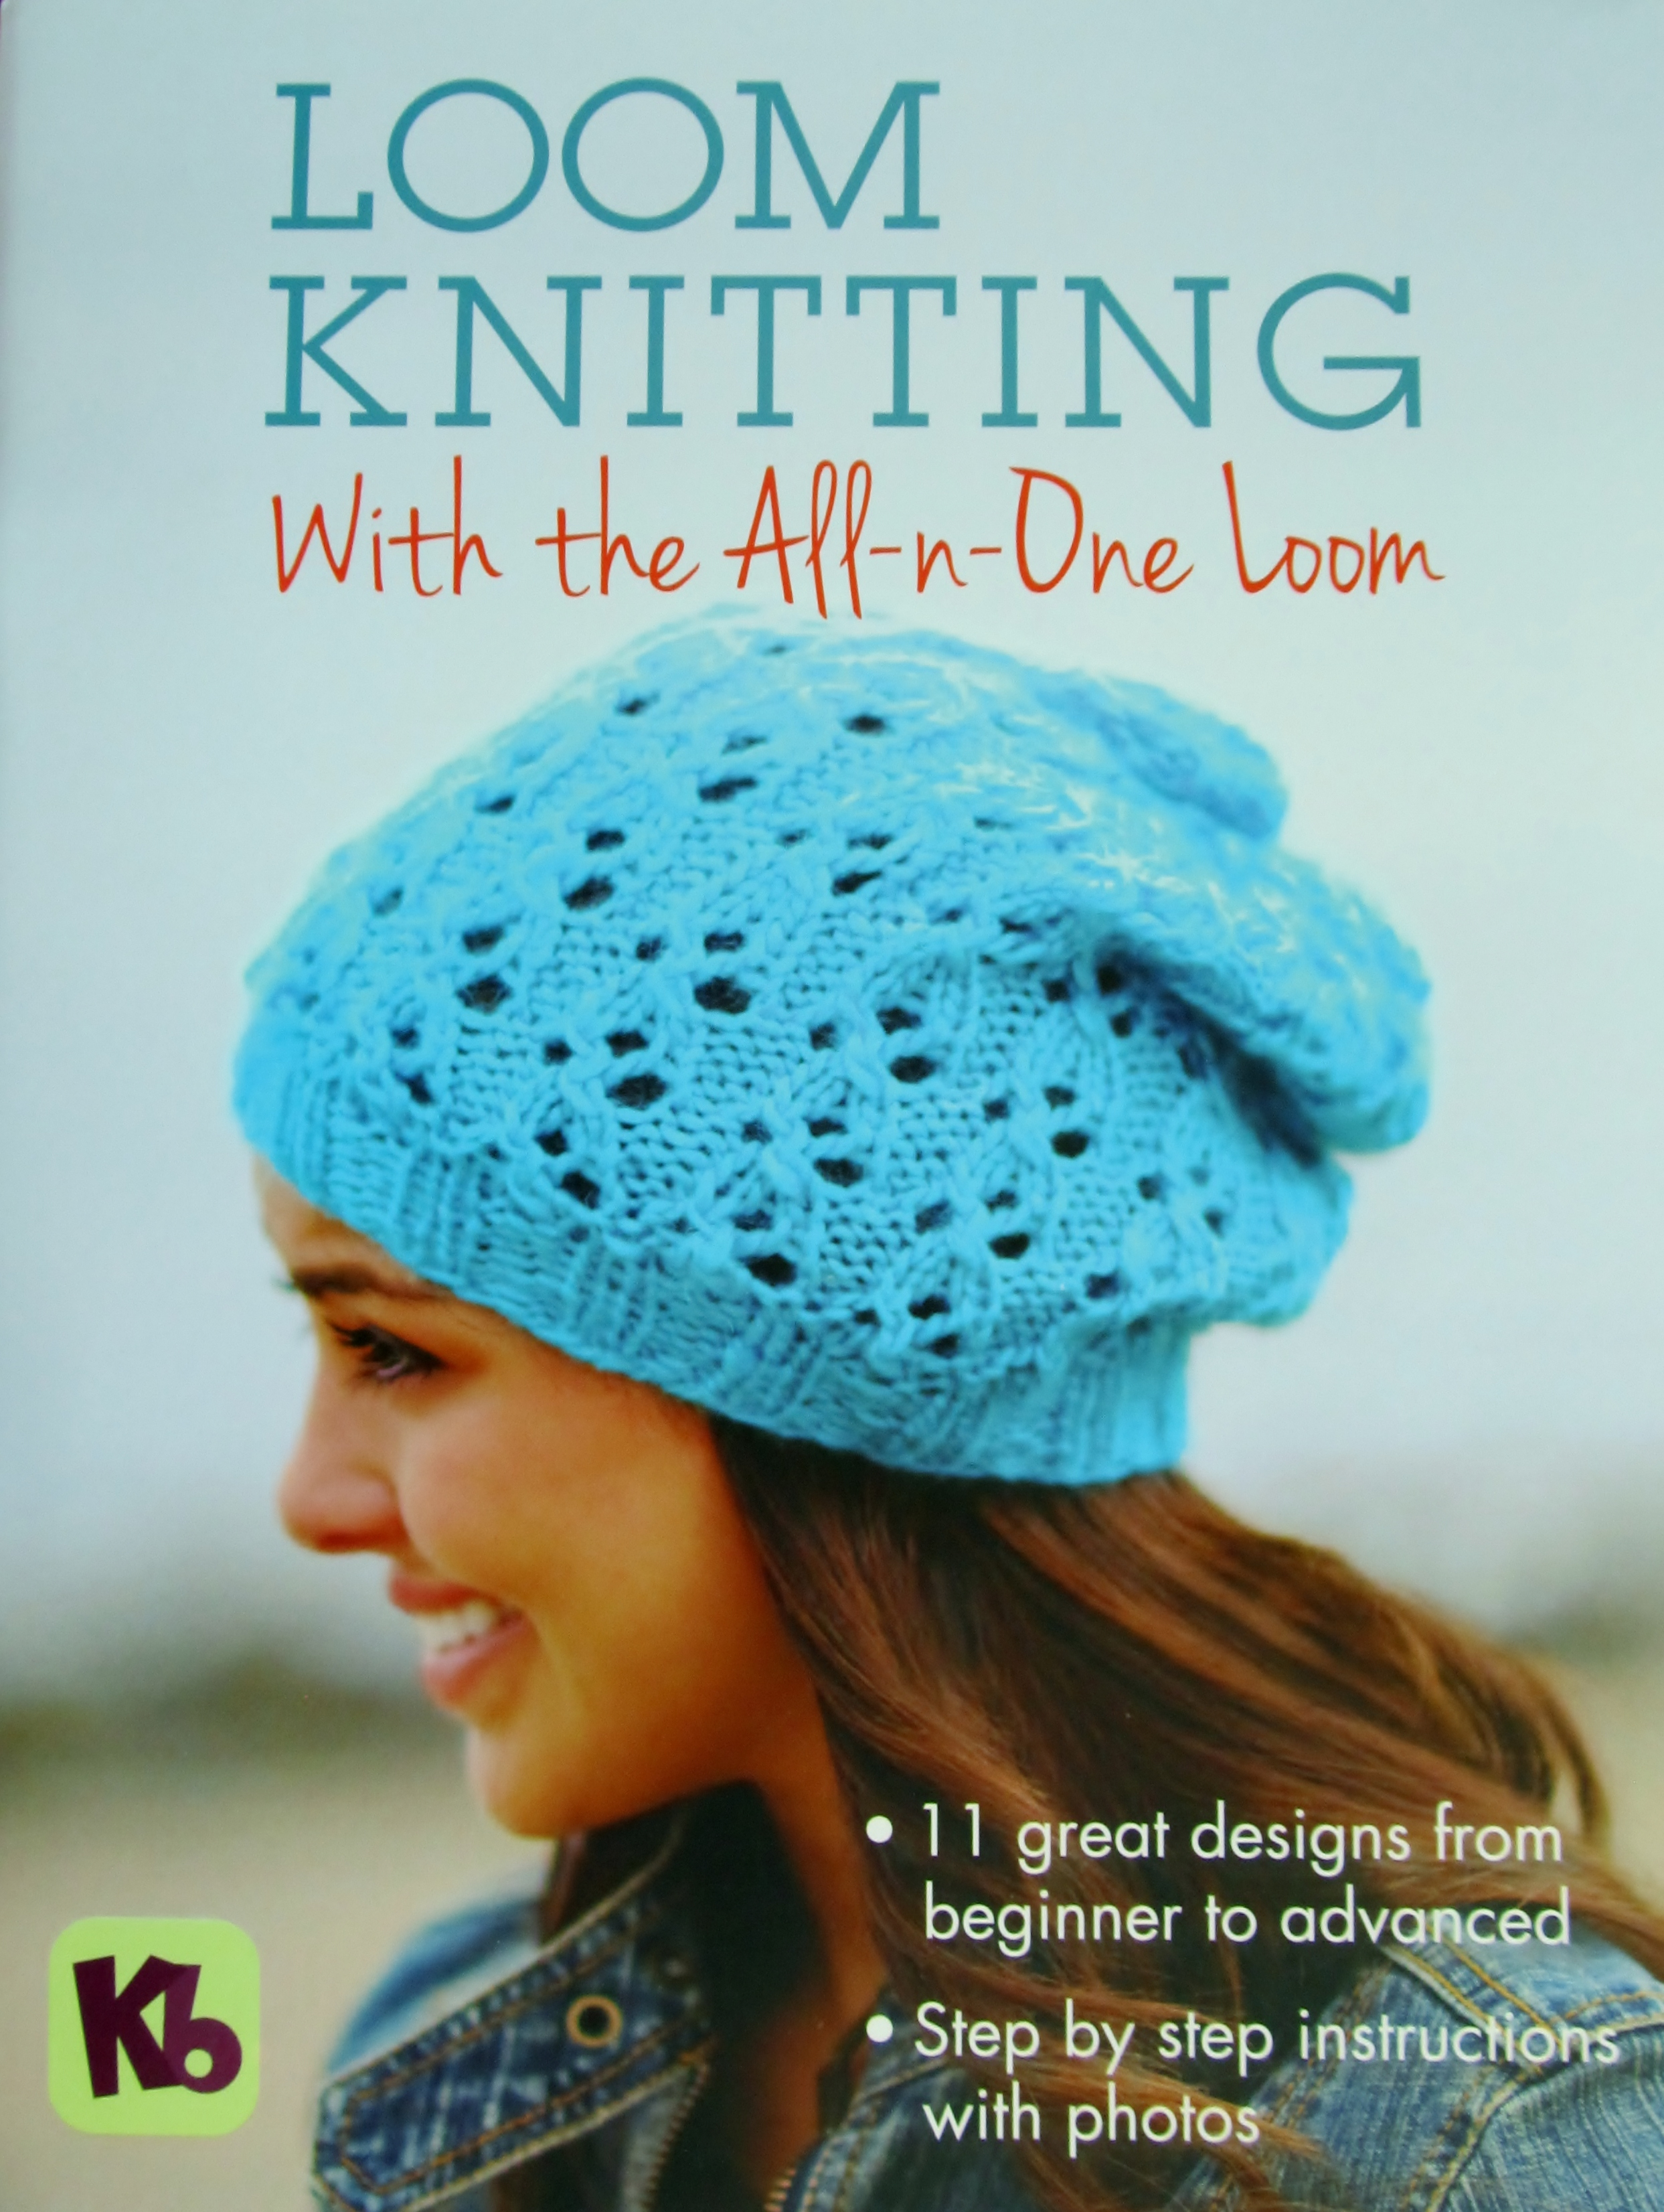 Loom Knitting : Loom Knitting with the All-n-One book Guppygirl